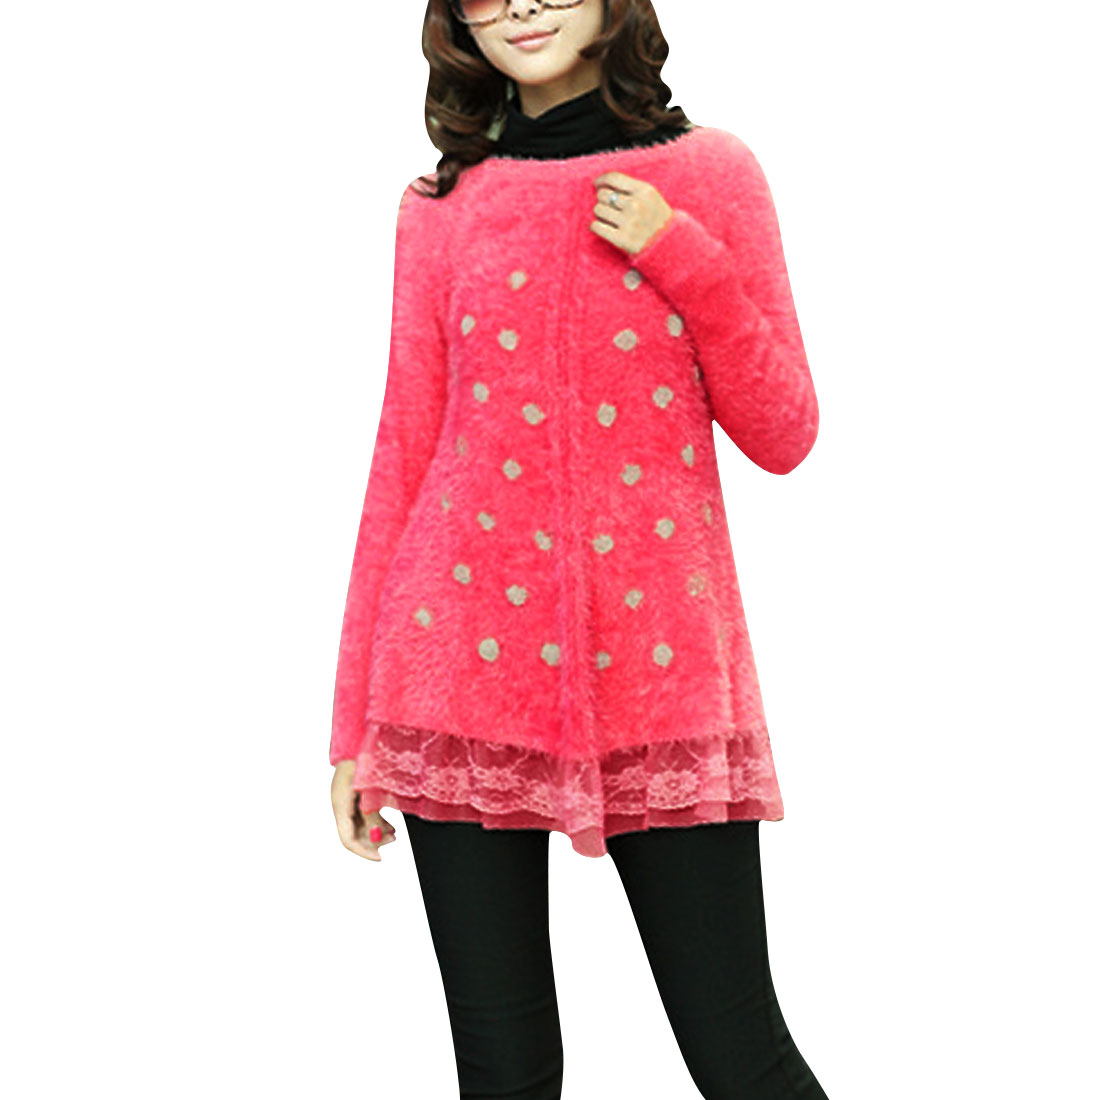 Ladies Long Sleeve Round Neck Dots Pattern Red Rabbit Plush Sweater XS